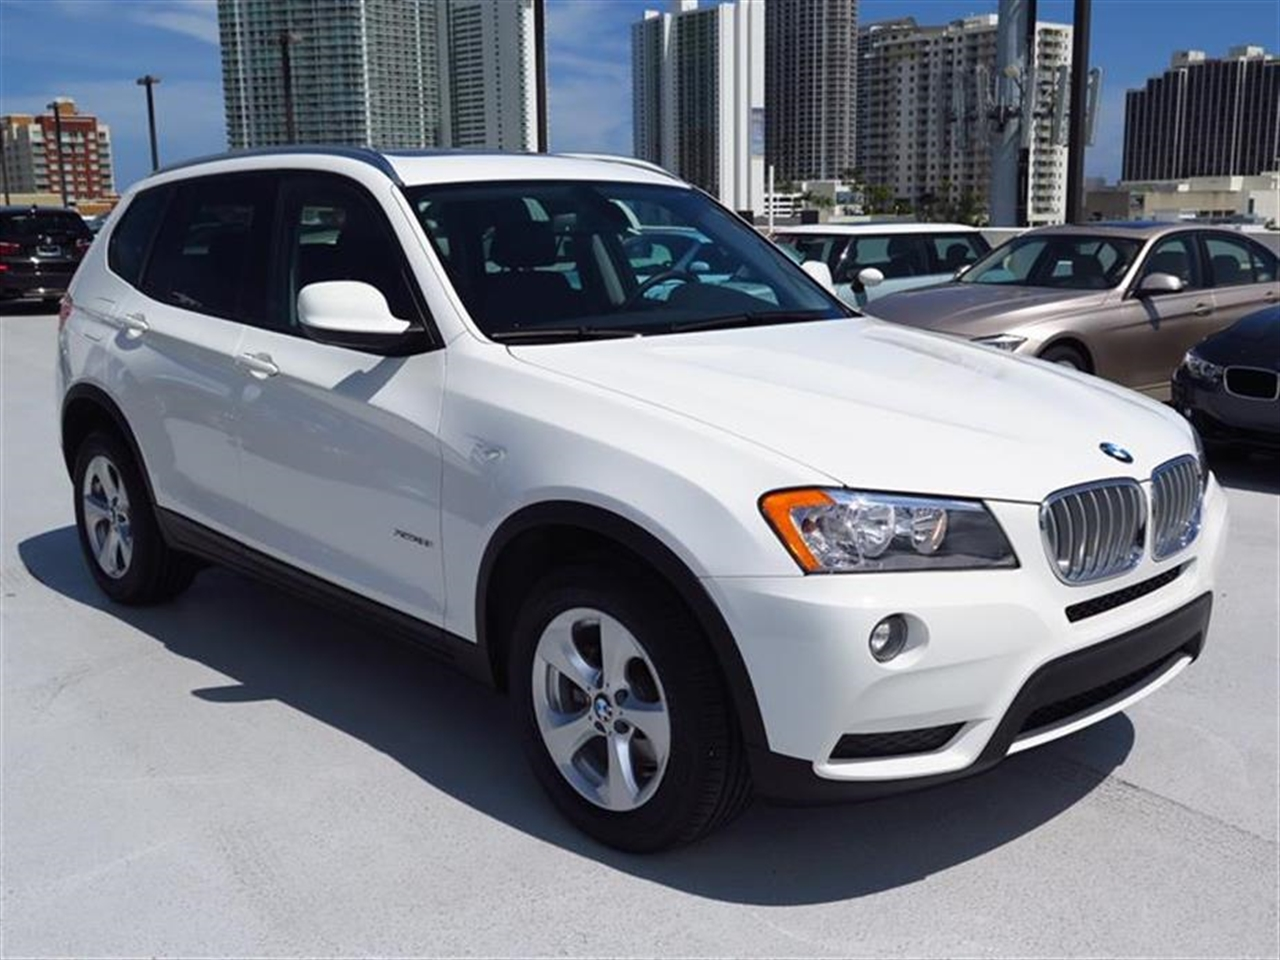 2011 BMW X3 AWD 4dr 28i 18348 miles 3-spoke leather-wrapped multi-function sport steering wheel w